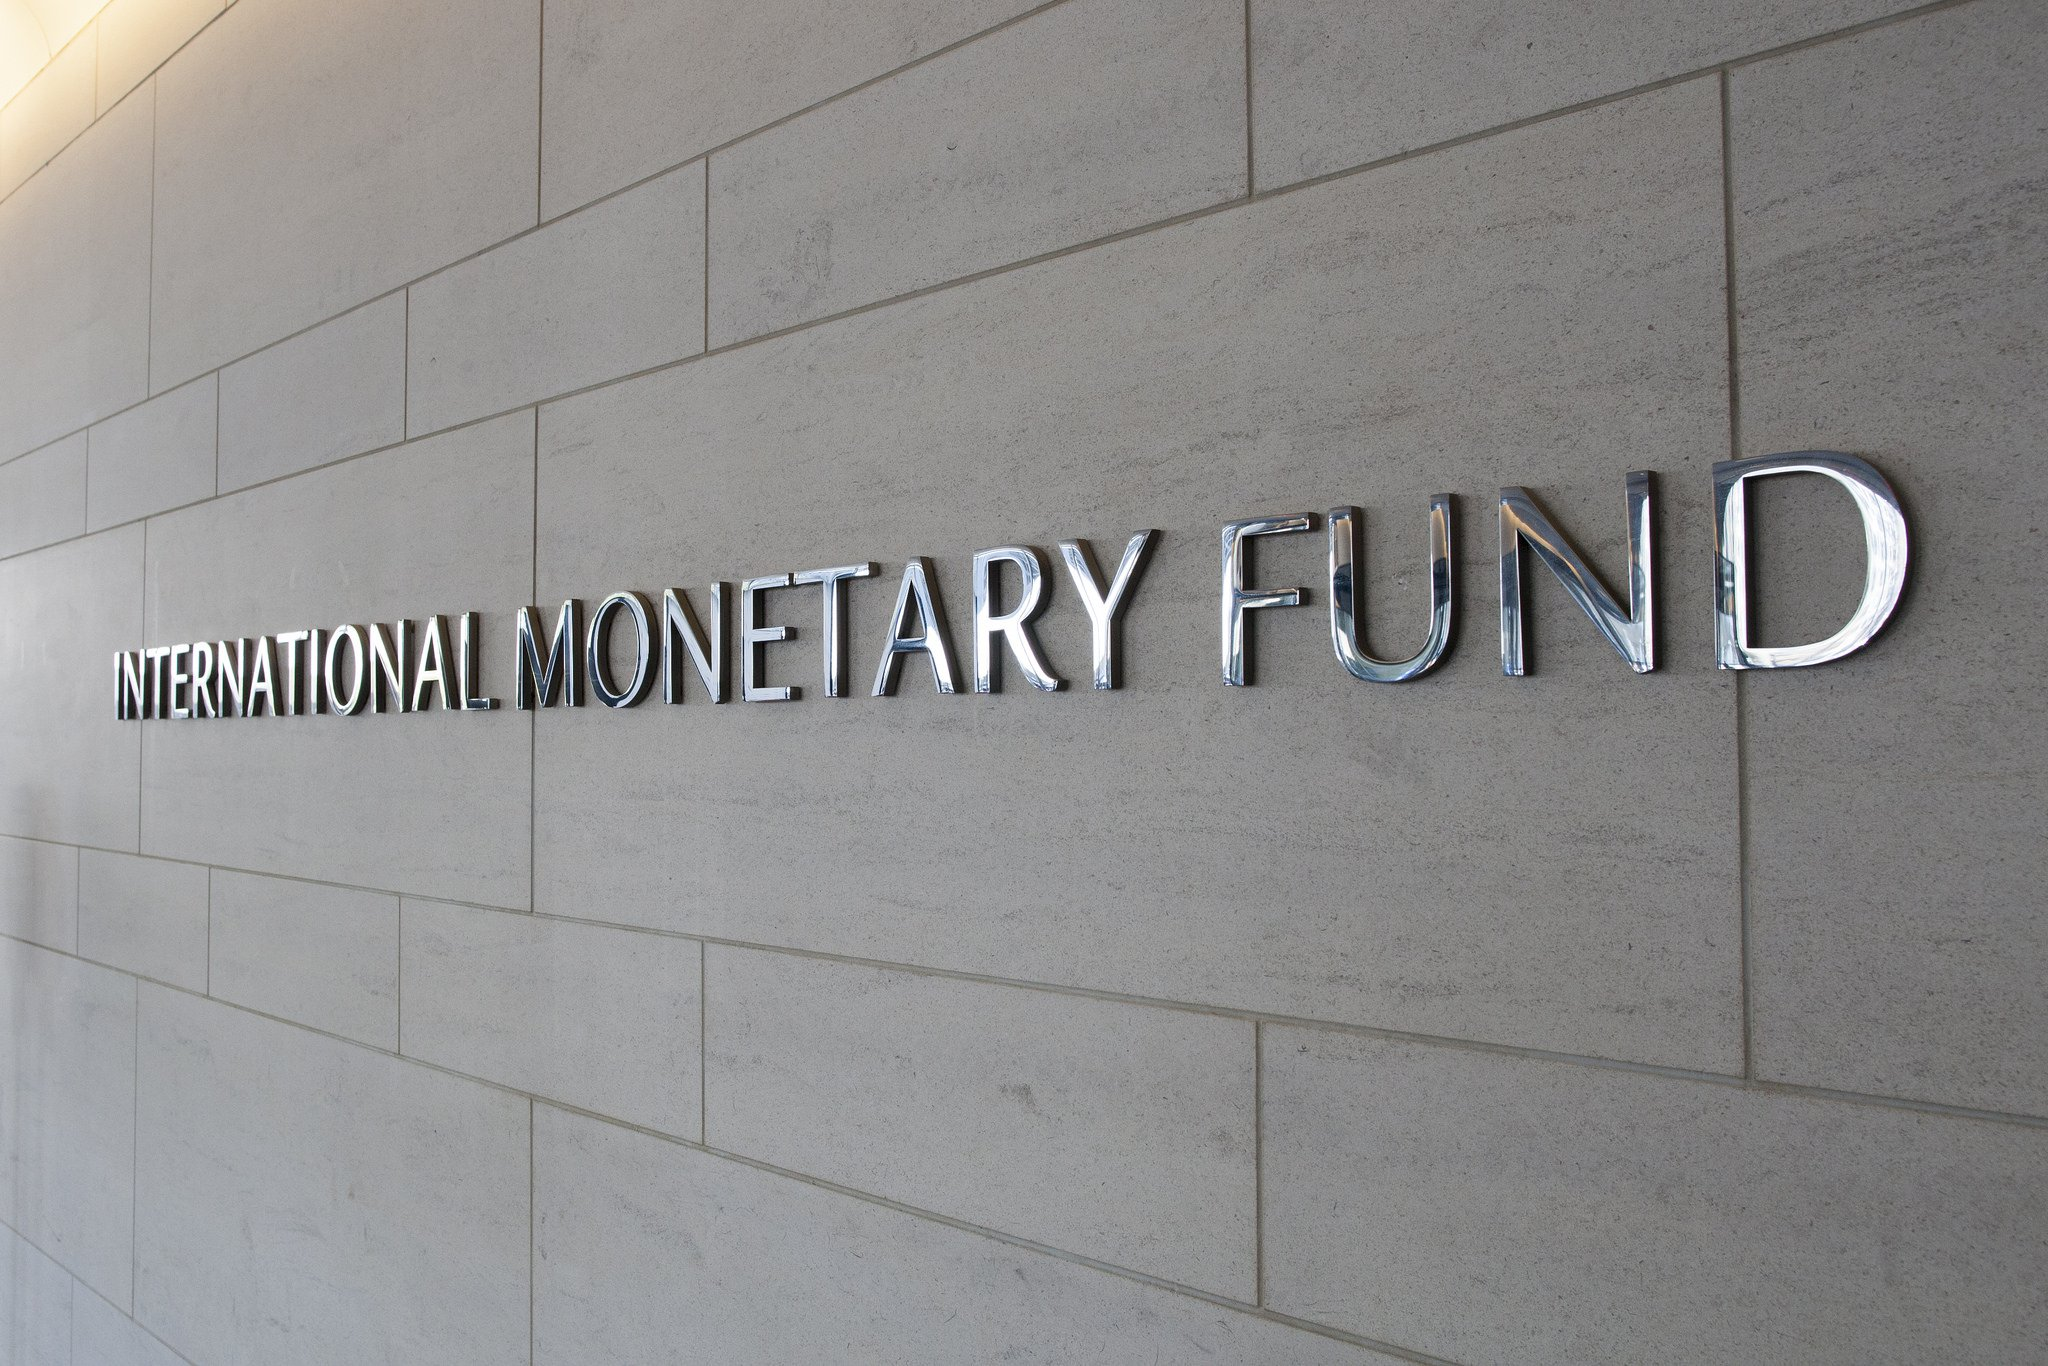 The International Monetary Fund in Washington, D.C. Photo: World Bank Photo Collection (CC BY-NC-ND 2.0)